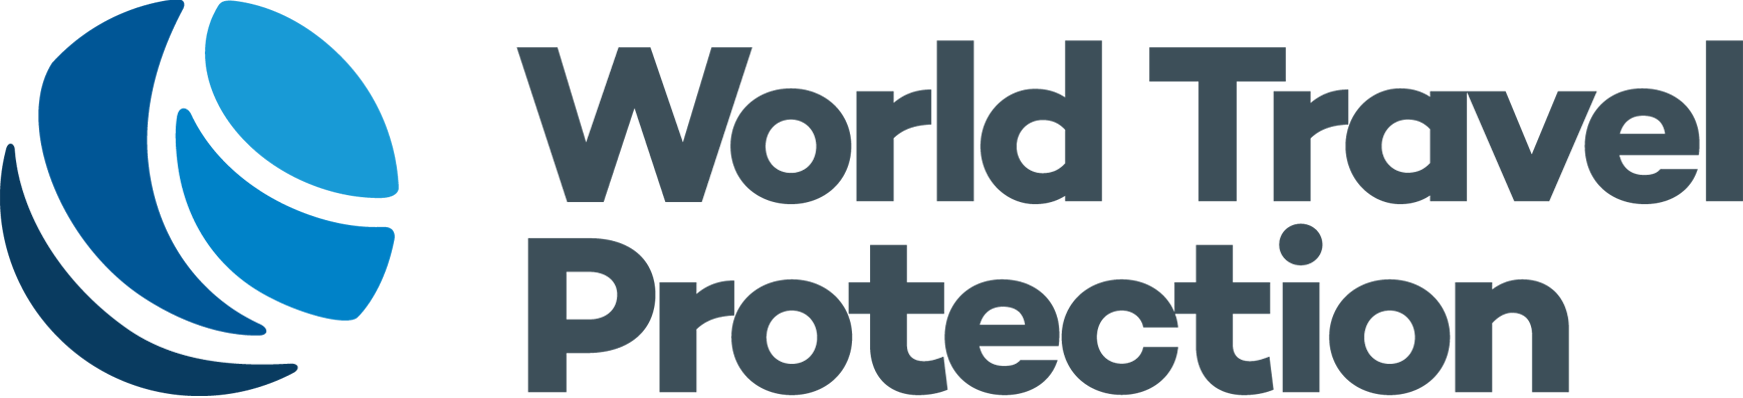 World Travel Protection Logo